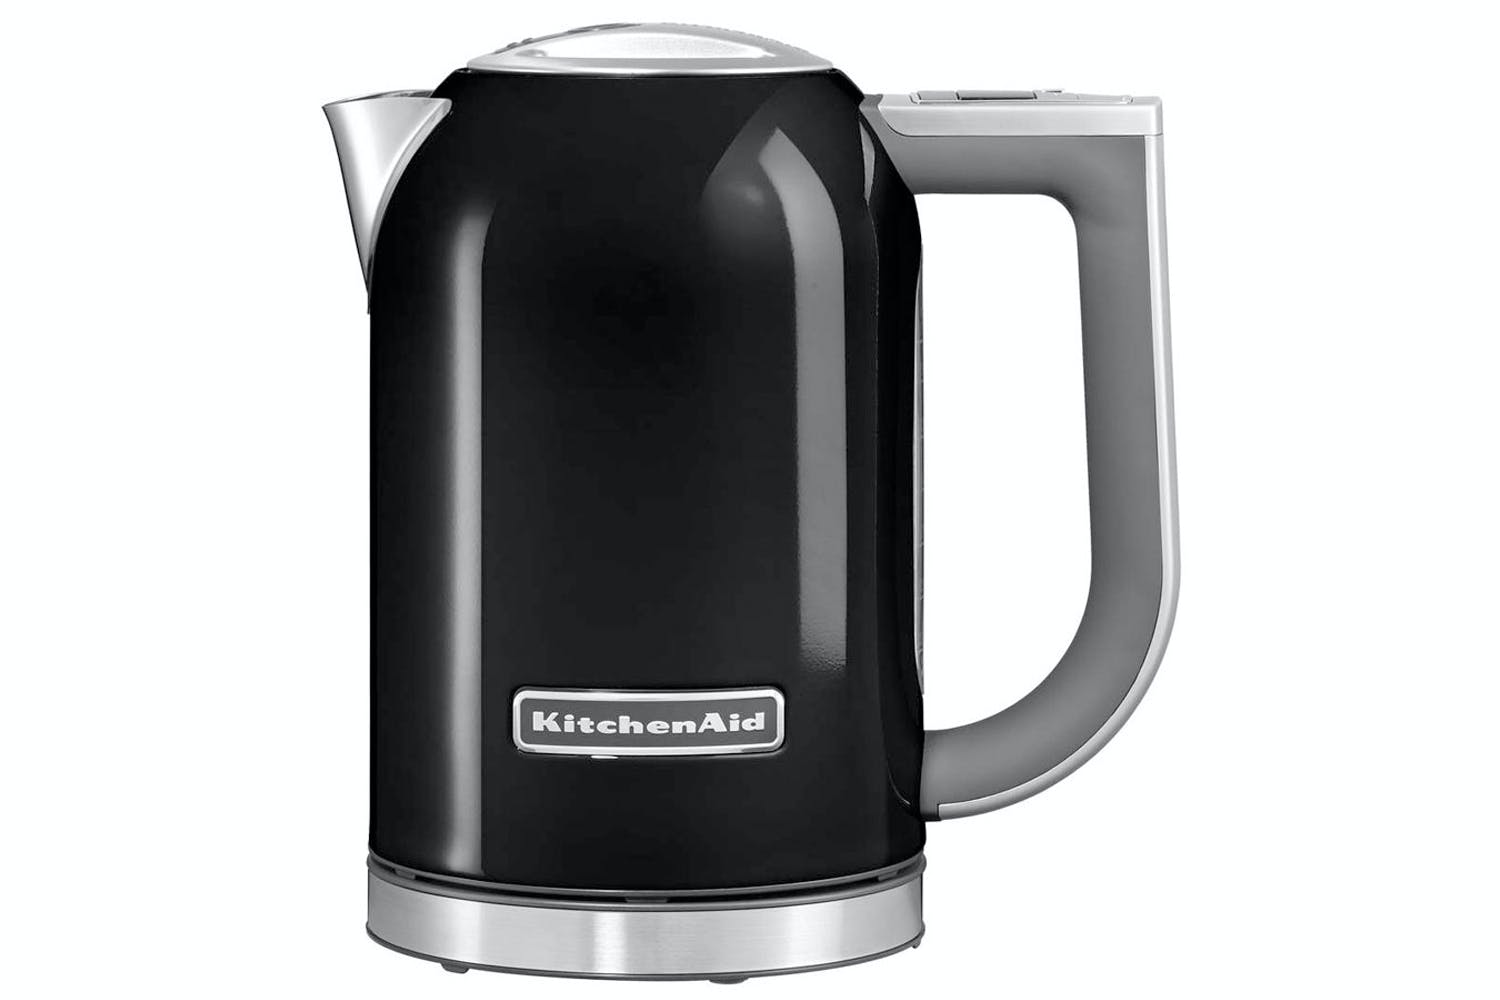 KitchenAid 1.7L Kettle | Onyx Black